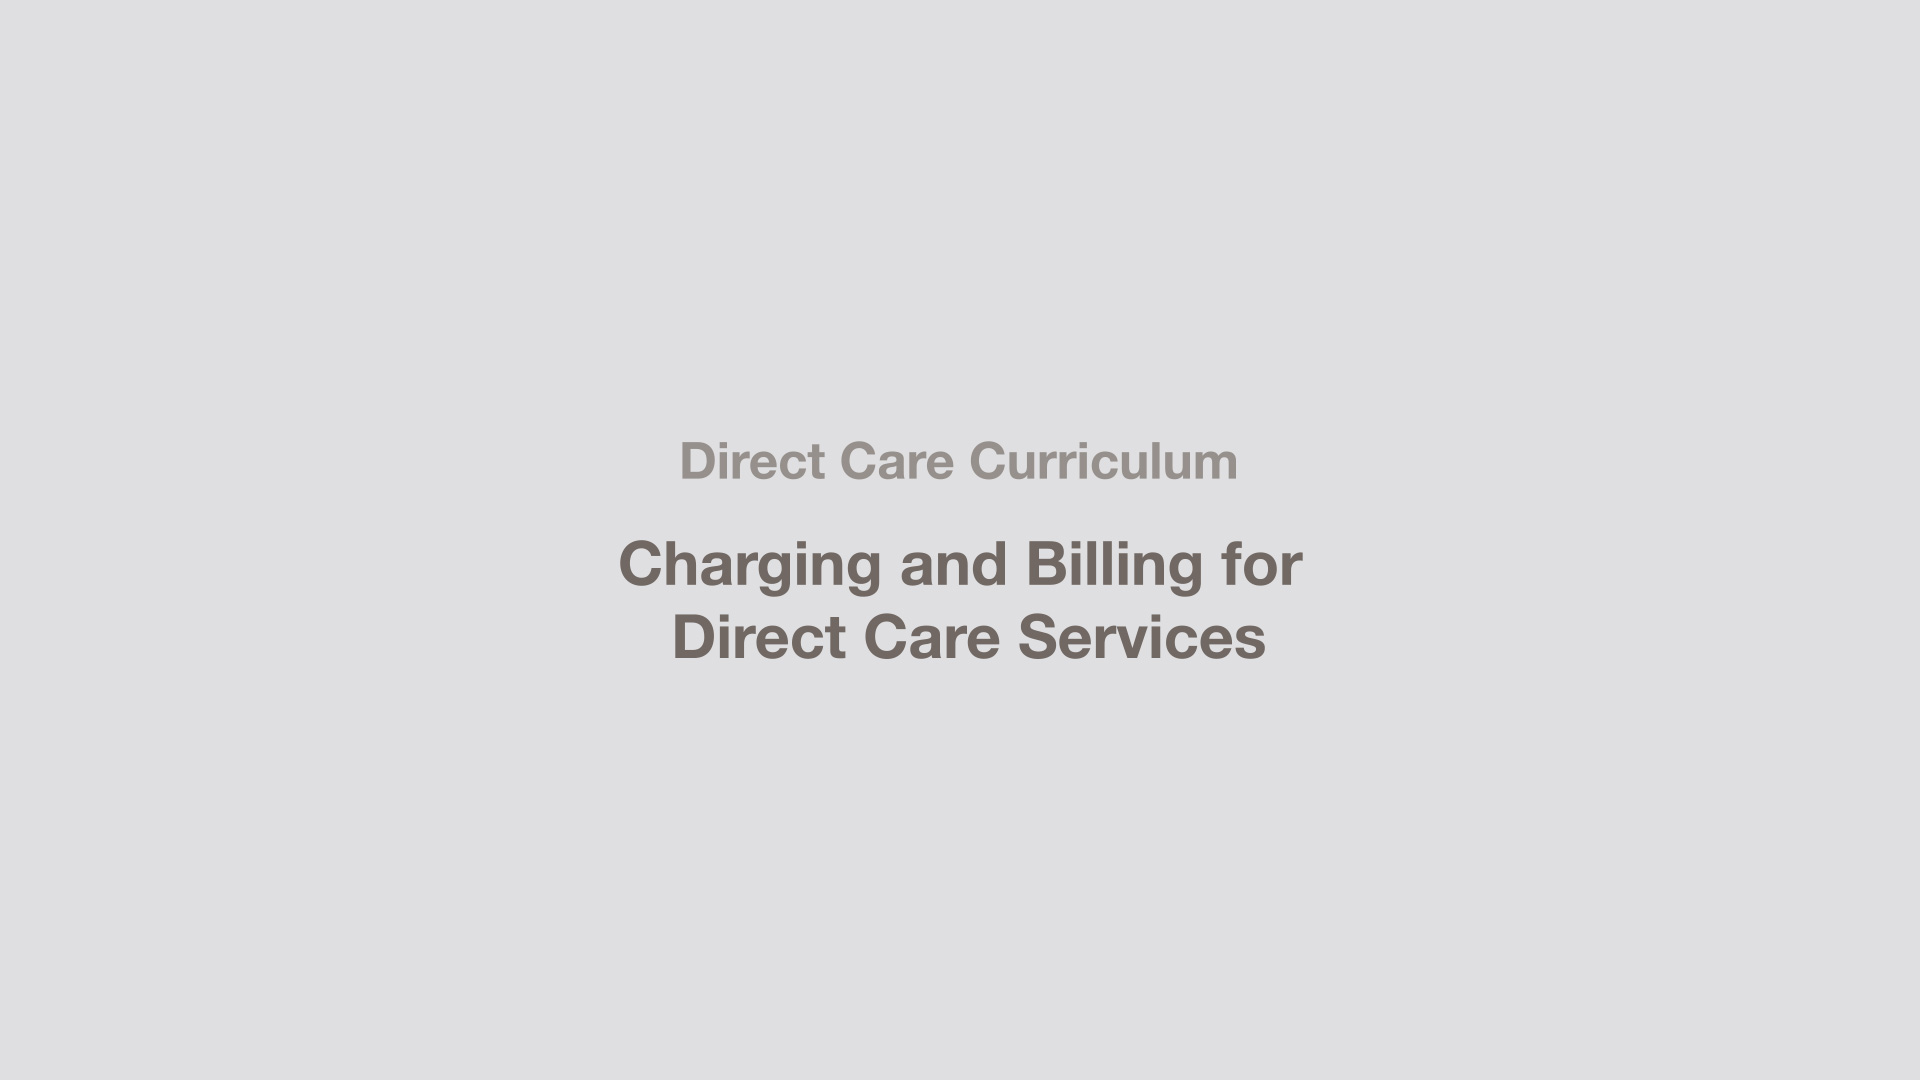 Charging and Billing for Direct Care Services